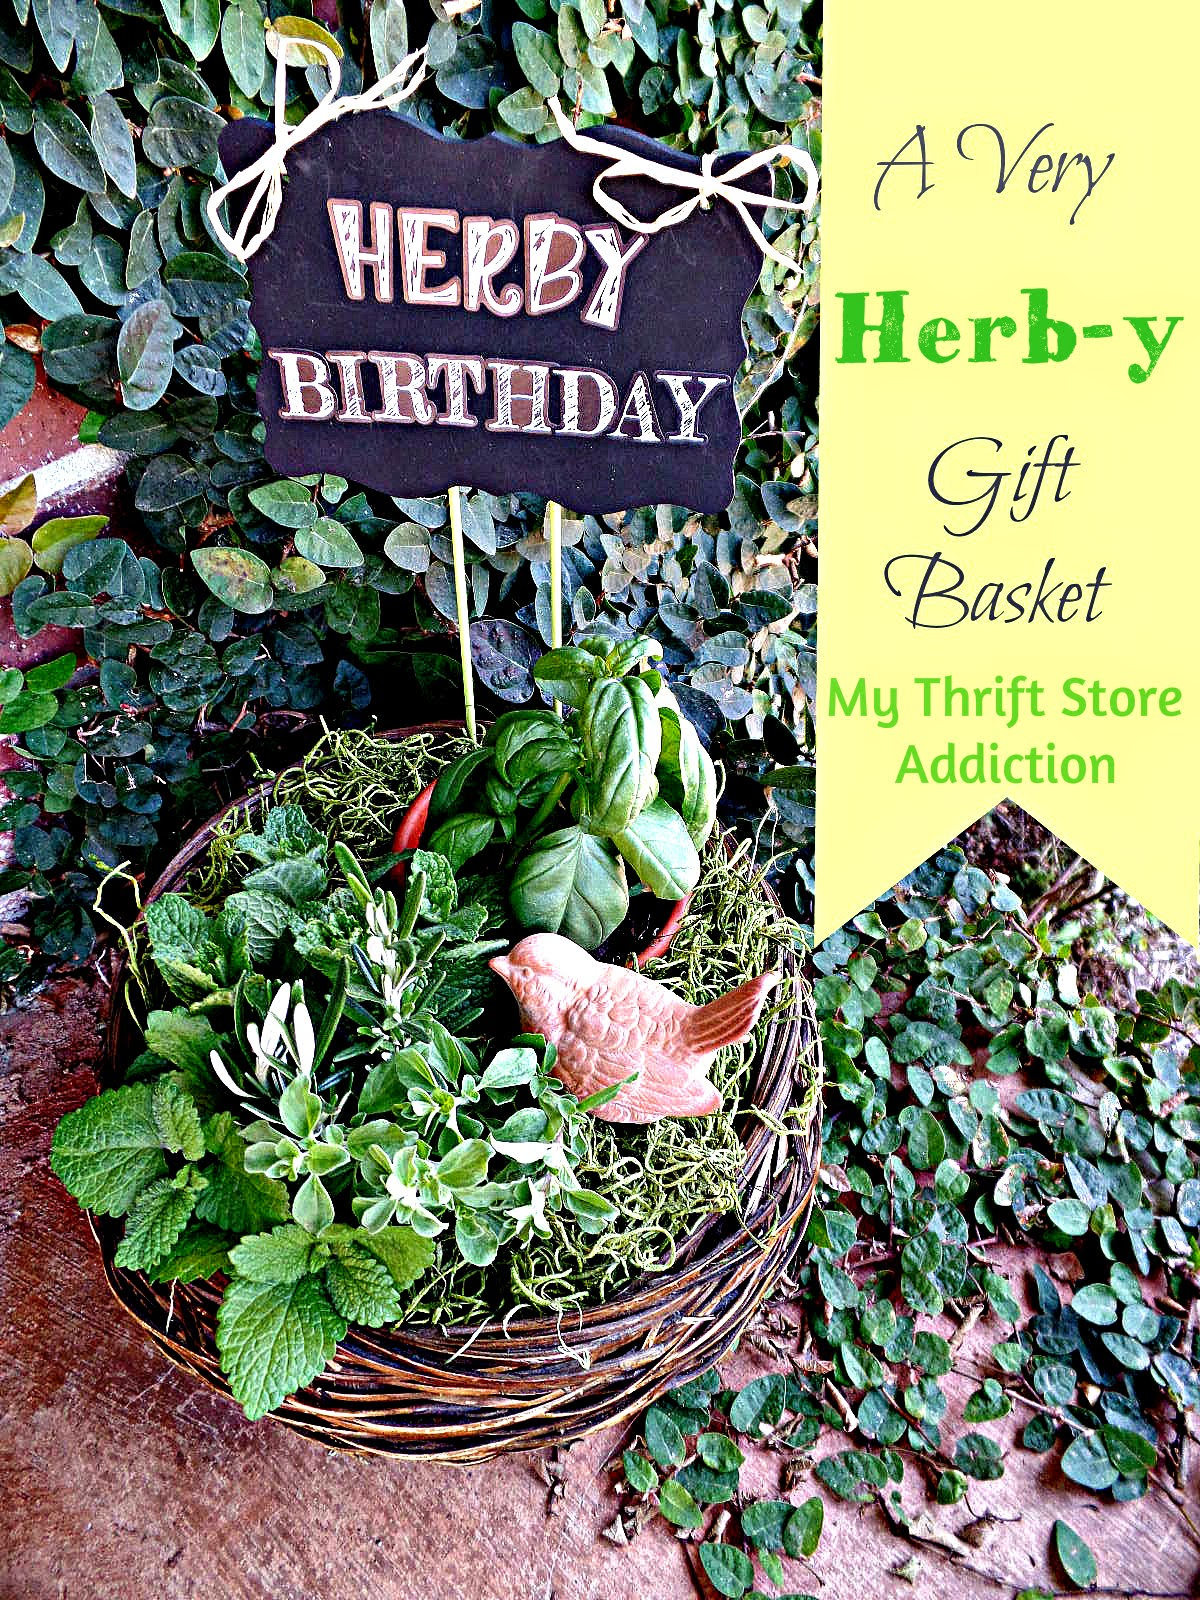 Herb gift basket